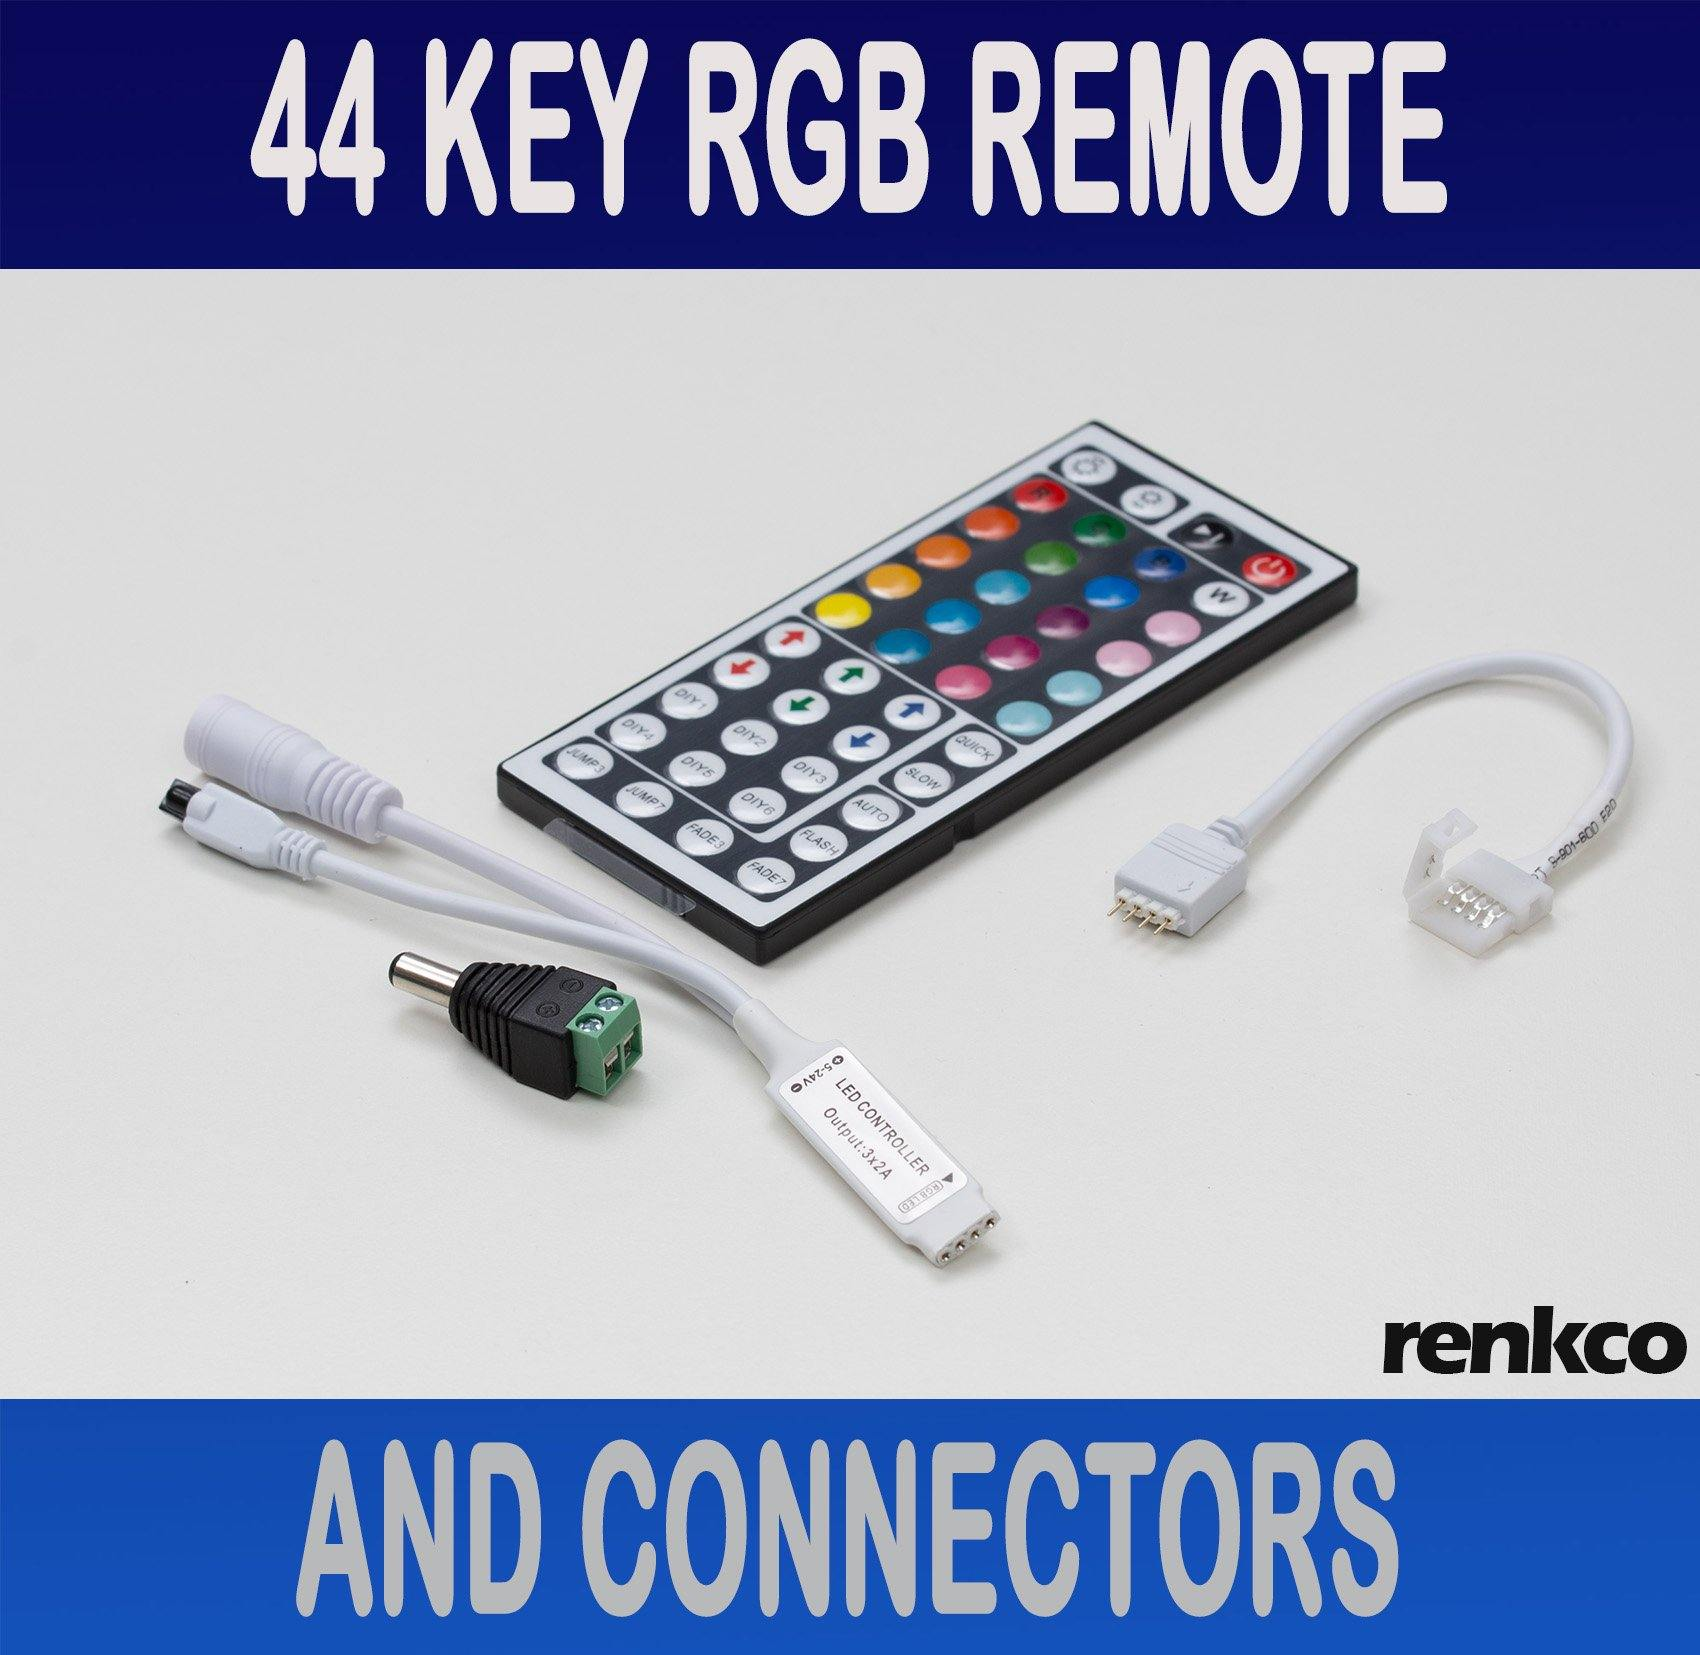 44 Key Ir Remote Rf Controller And Connector For Rgb 3528 5050 Led Pic Control Light Strip